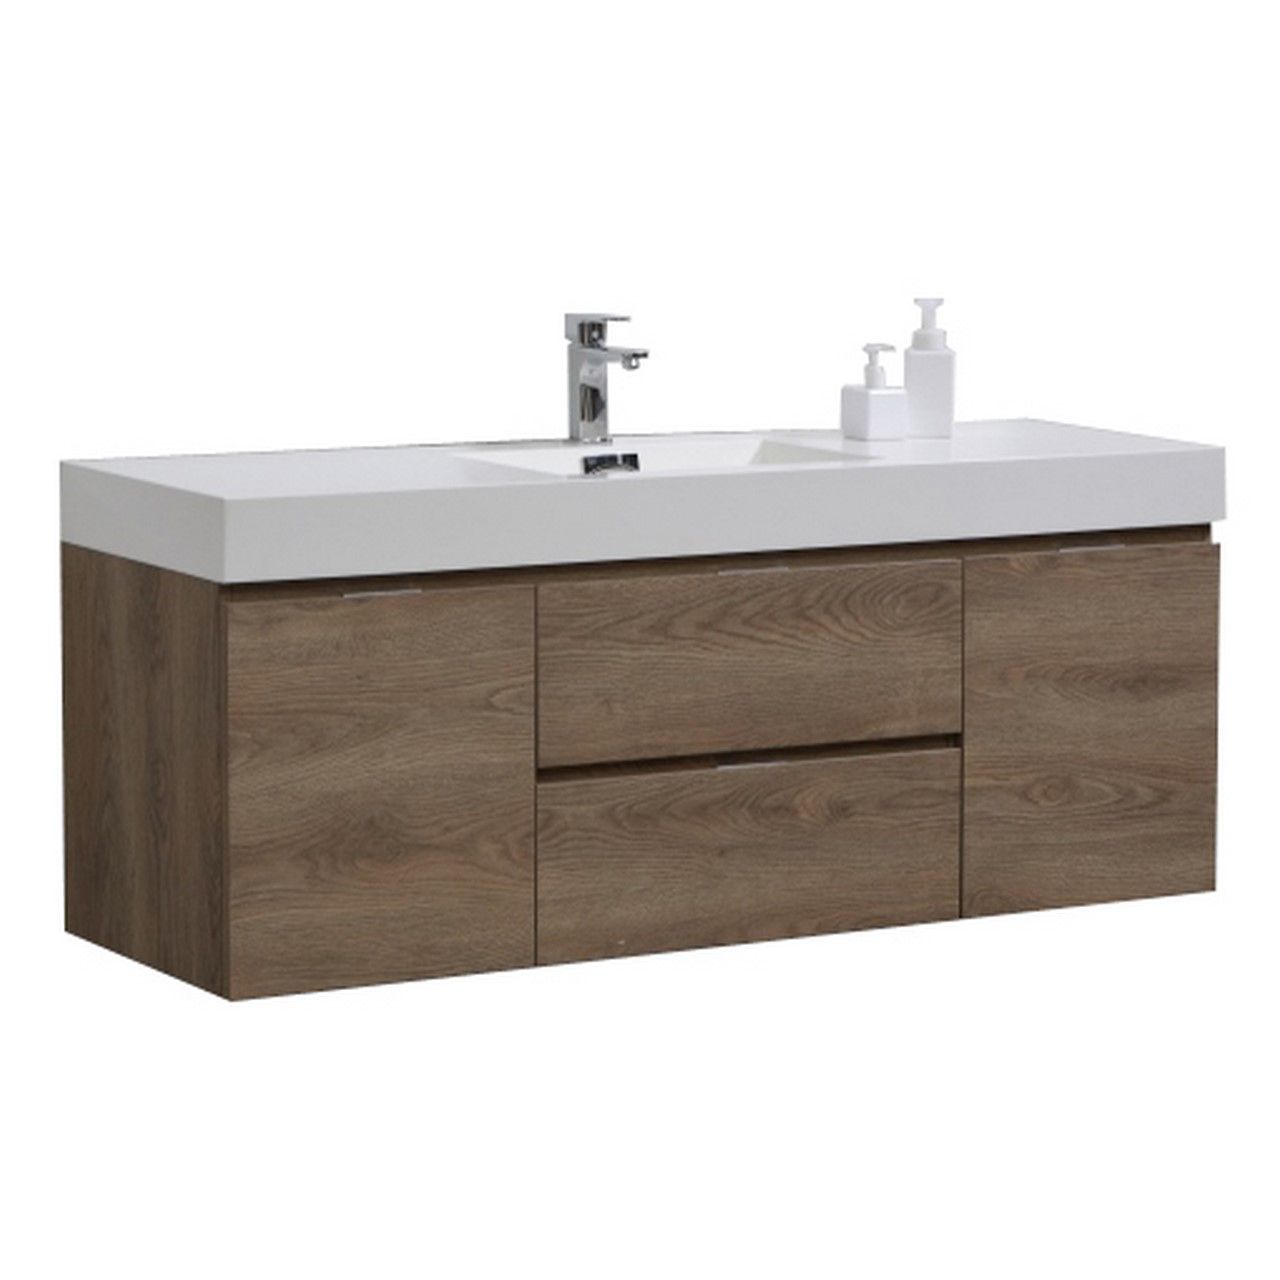 "Modern Lux 60"" Single Sink Butternut Wall Mount Modern Bathroom Vanity"